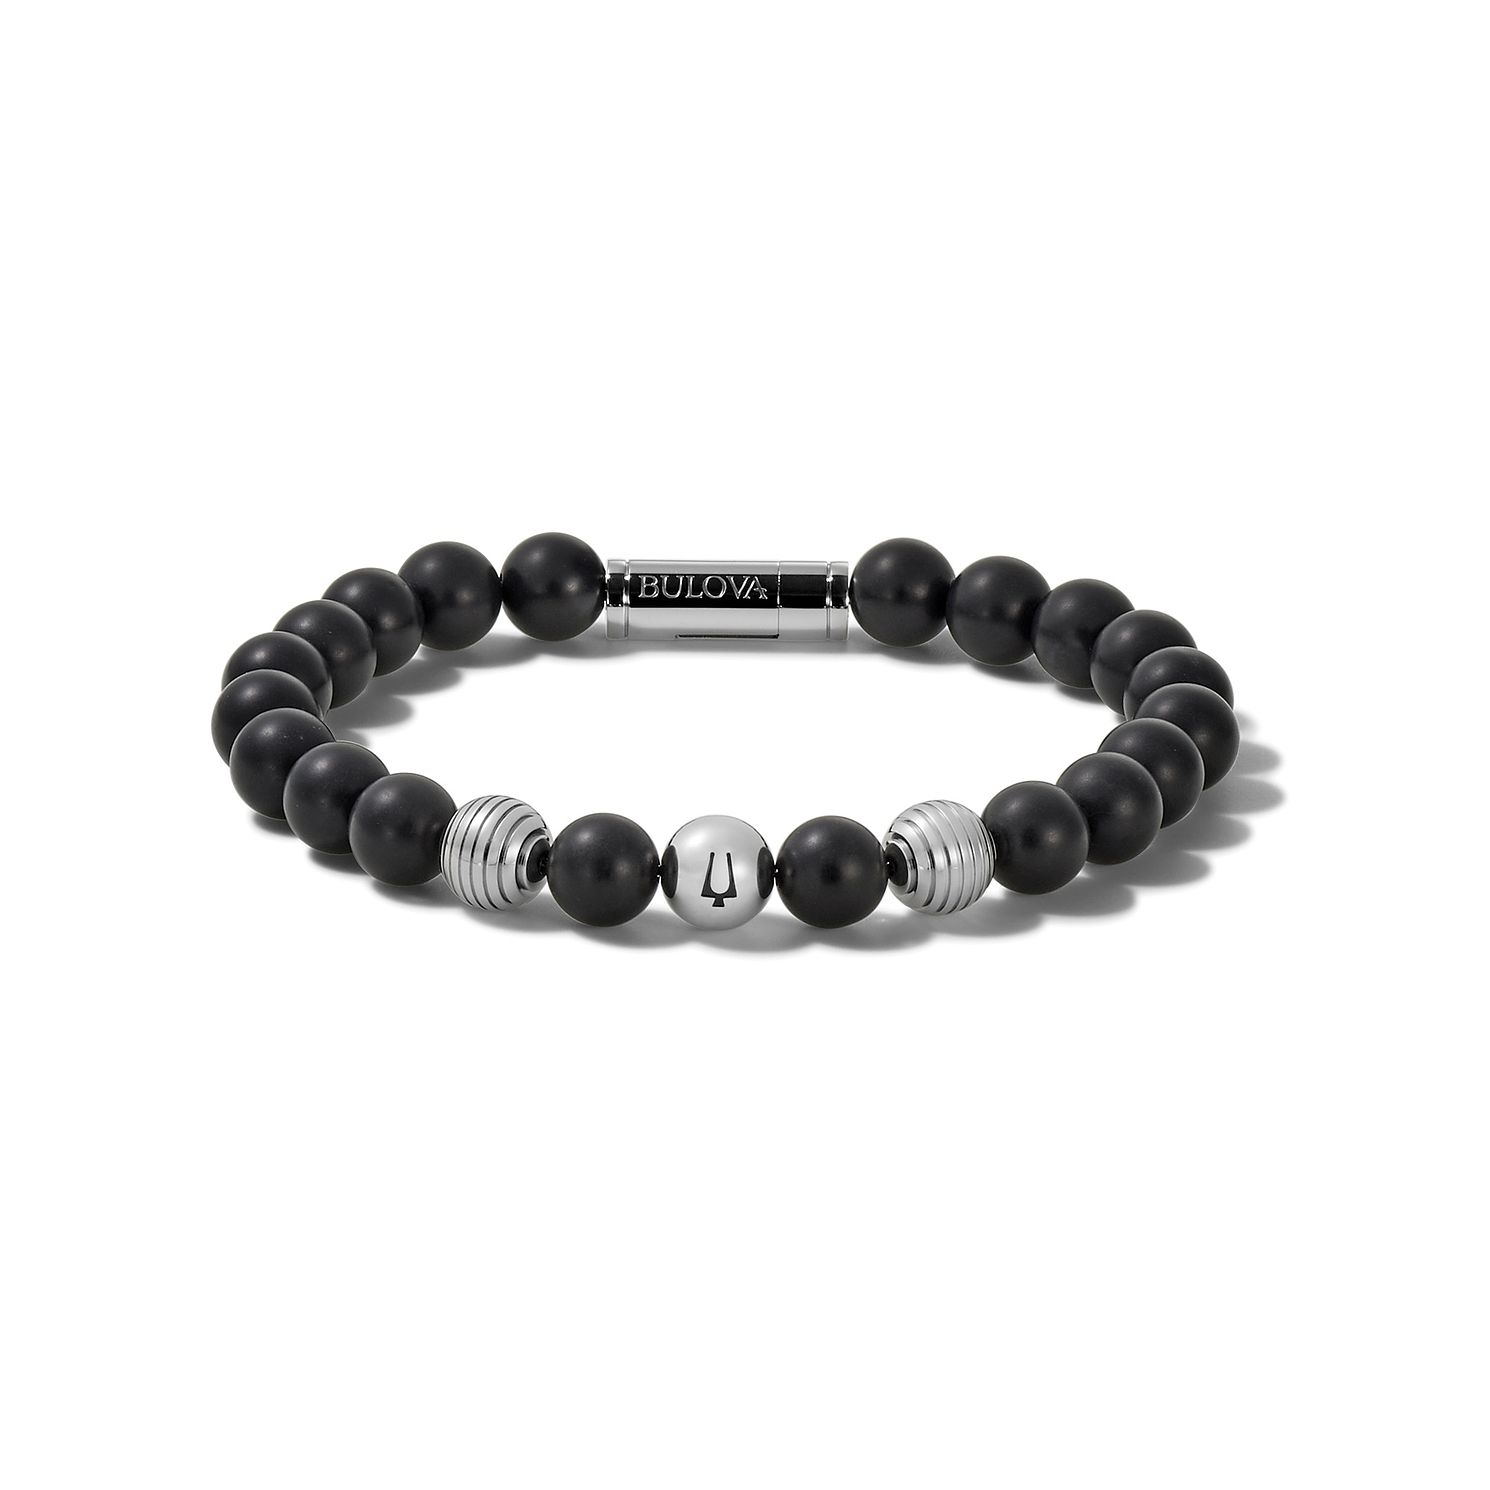 Bulova Onyx, Black Lava & Stainless Steel Bead Bracelet - Product number 3532844